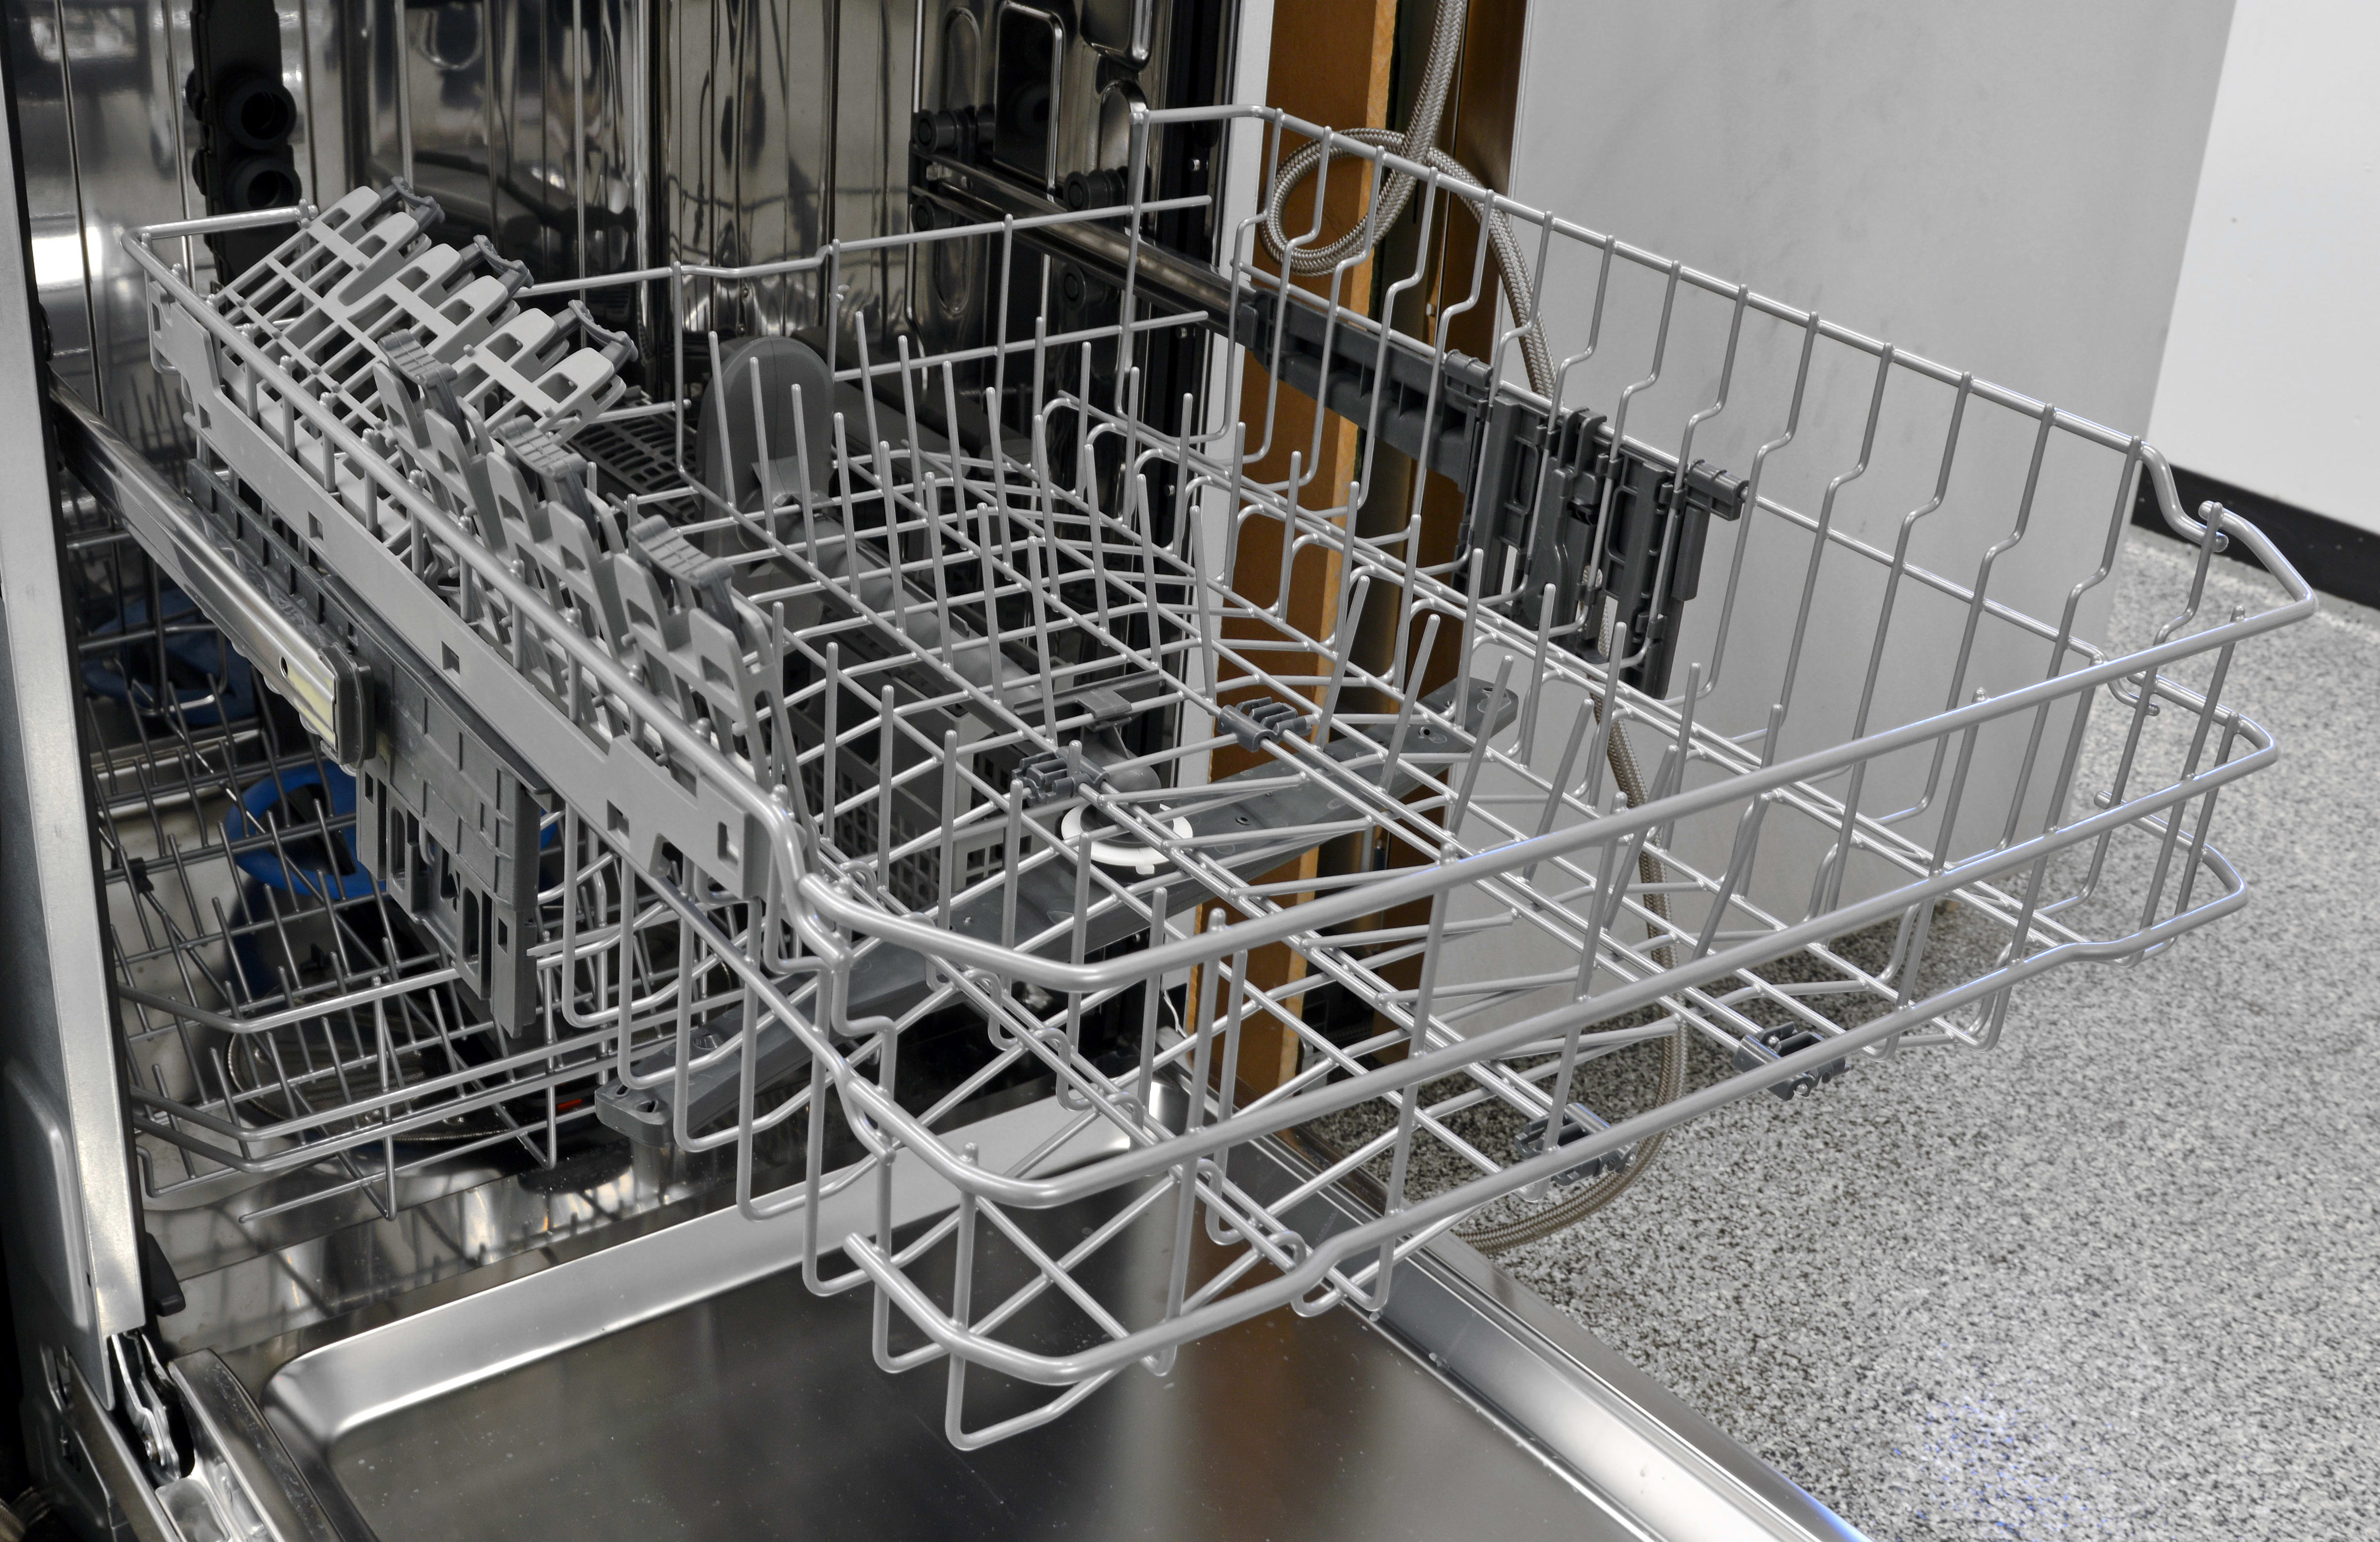 The upper rack not only gets adjustable tines and stemware holders, you can also adjust the height by lifting it into place.